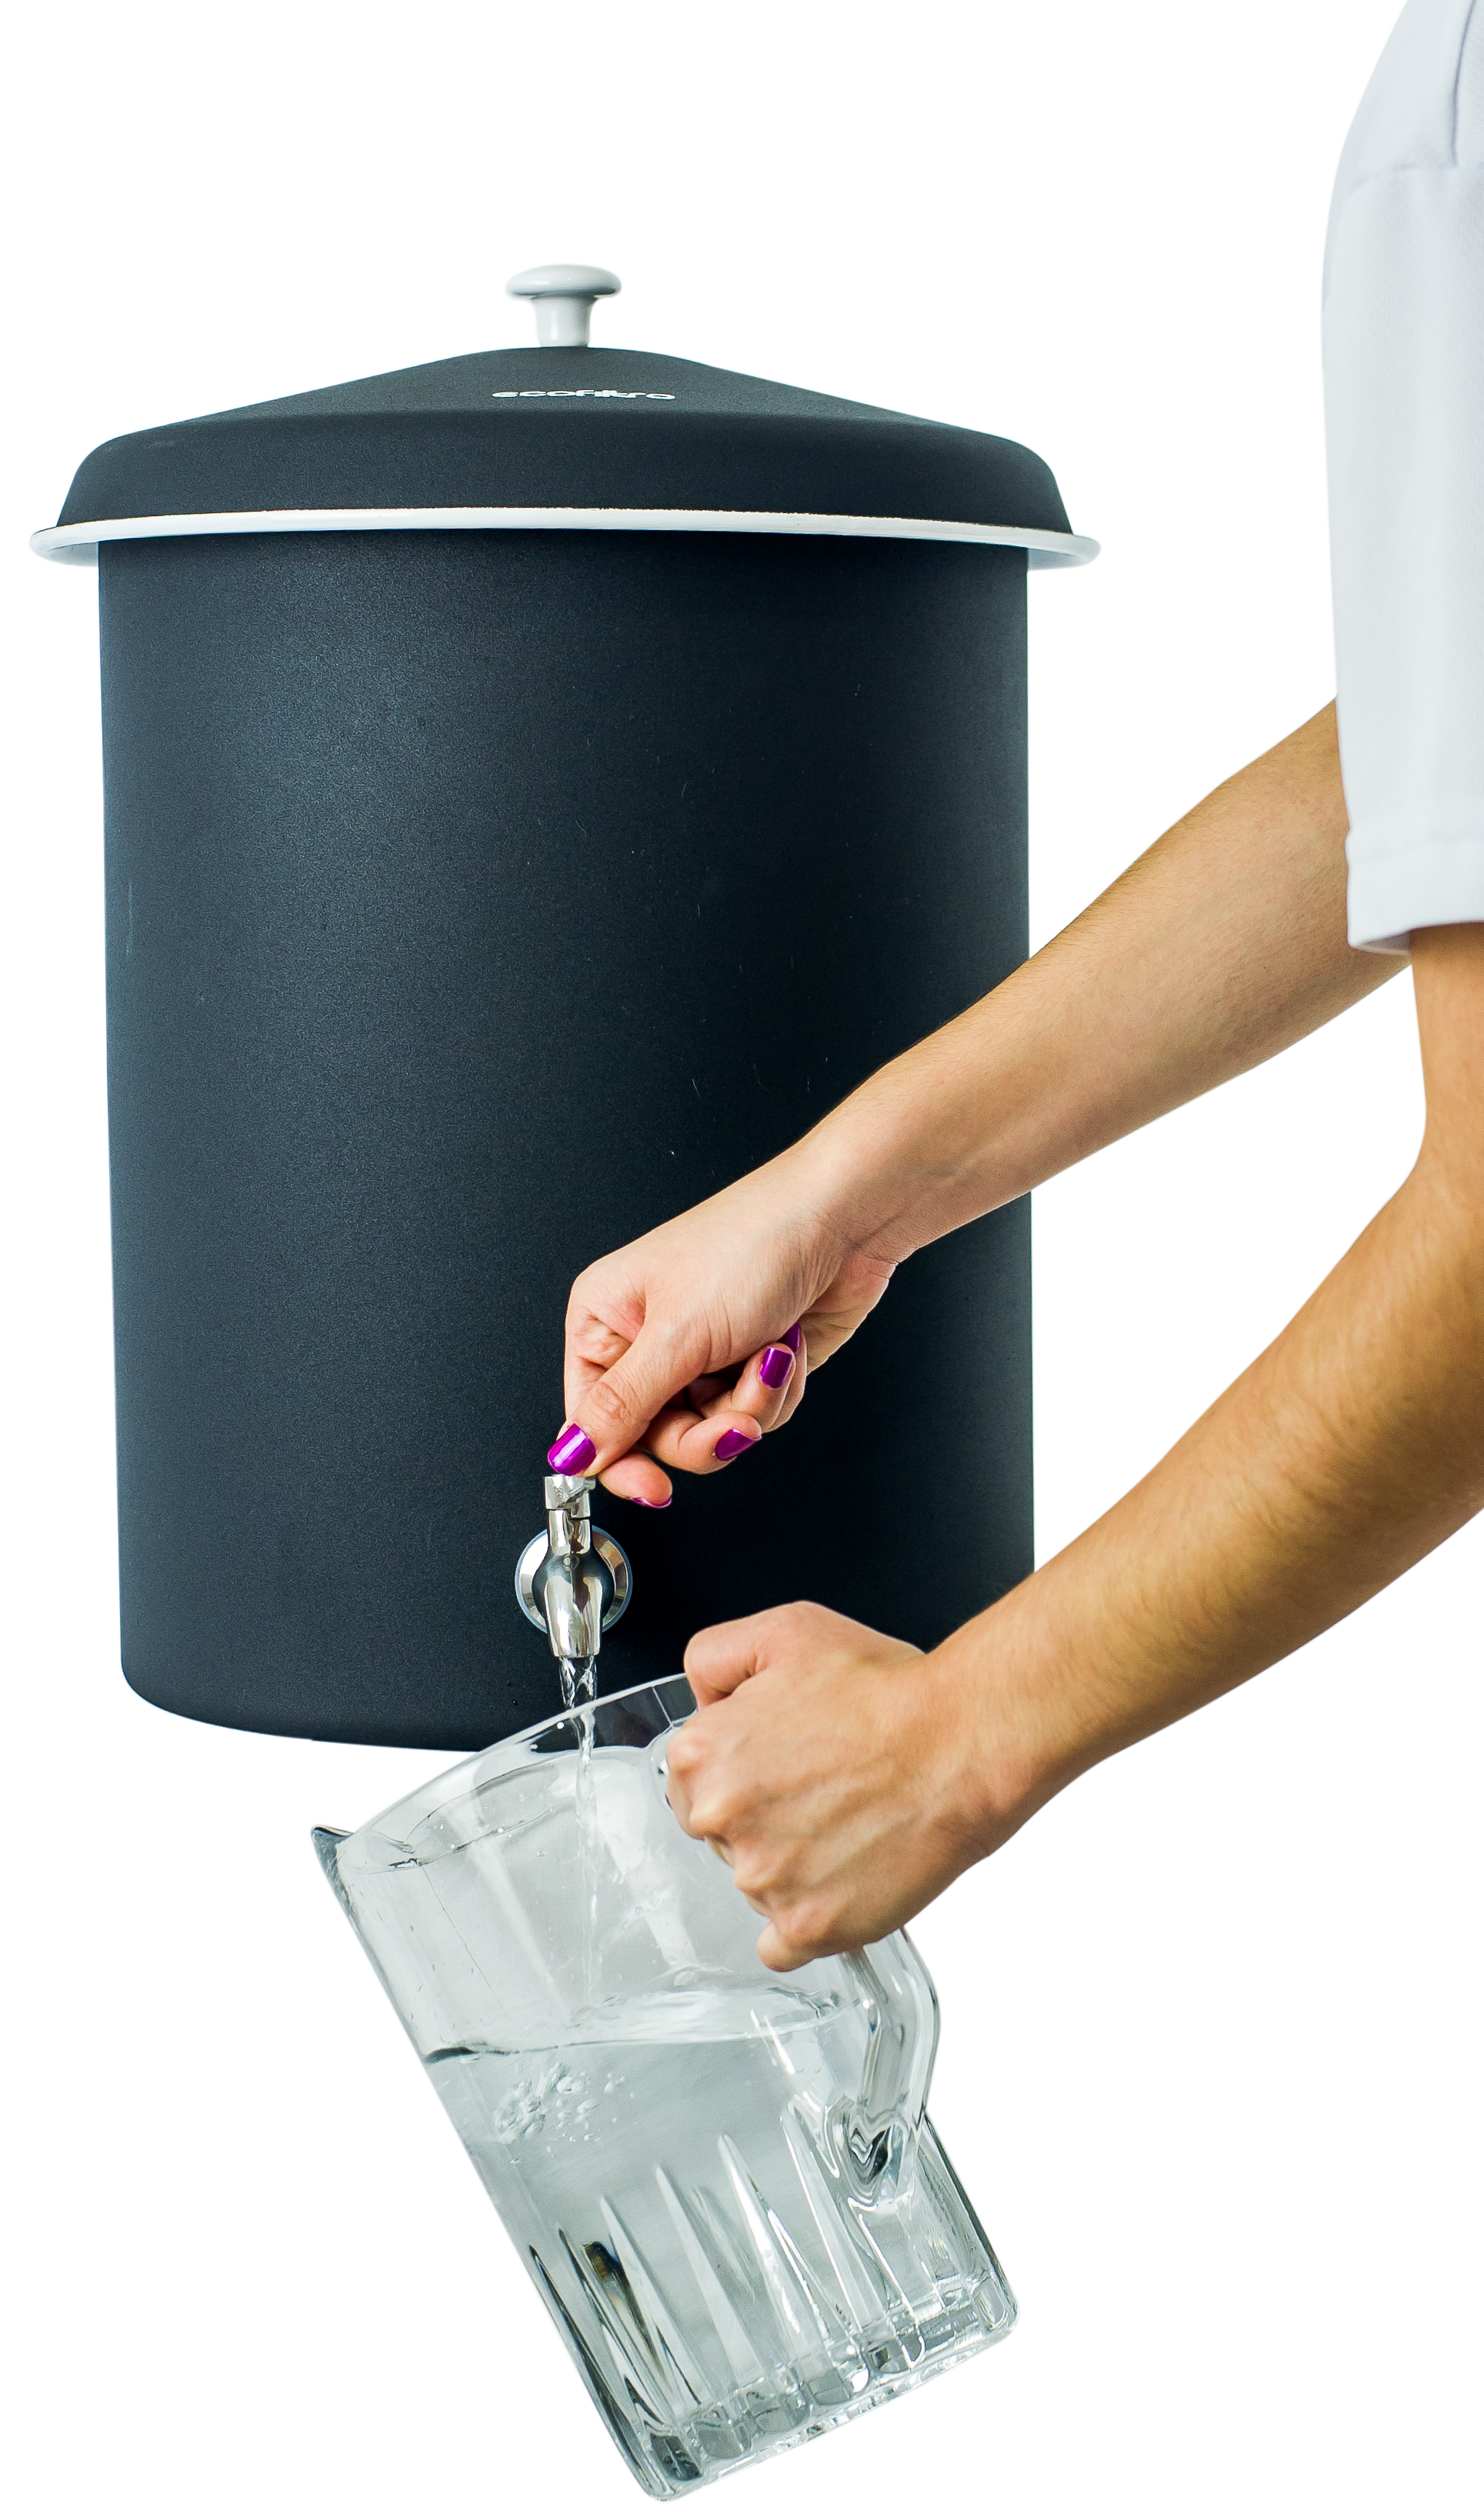 Step 3 - The Ecofiltro will provide up to 2 liters of purified water per hour.